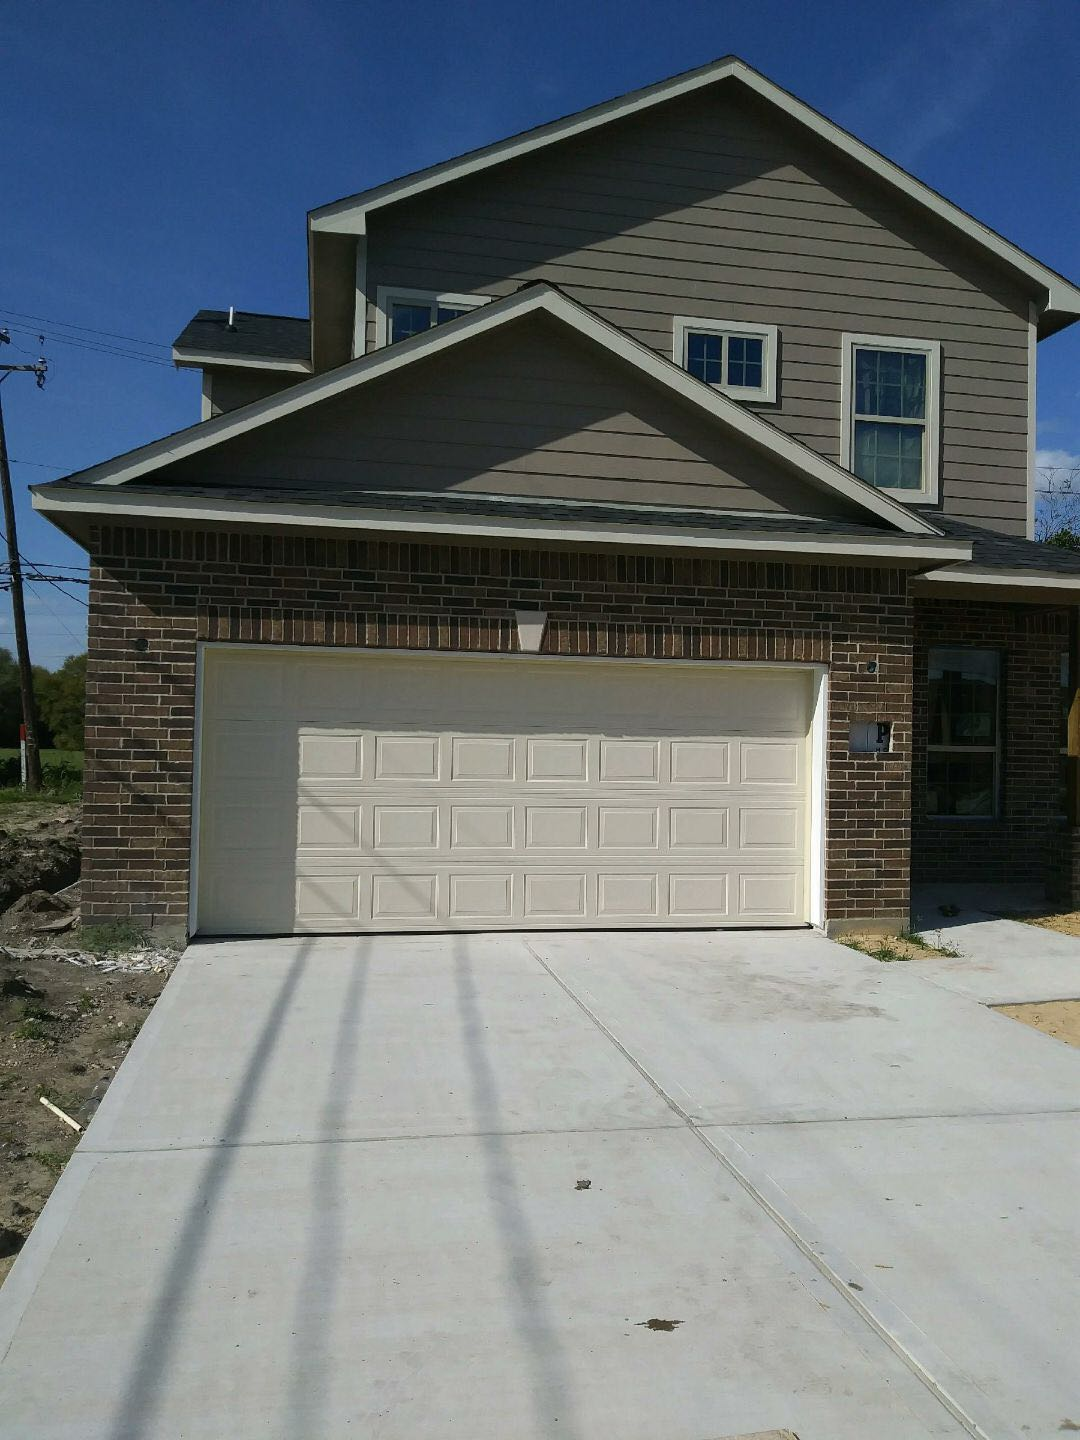 Residential garage doors attached to the home